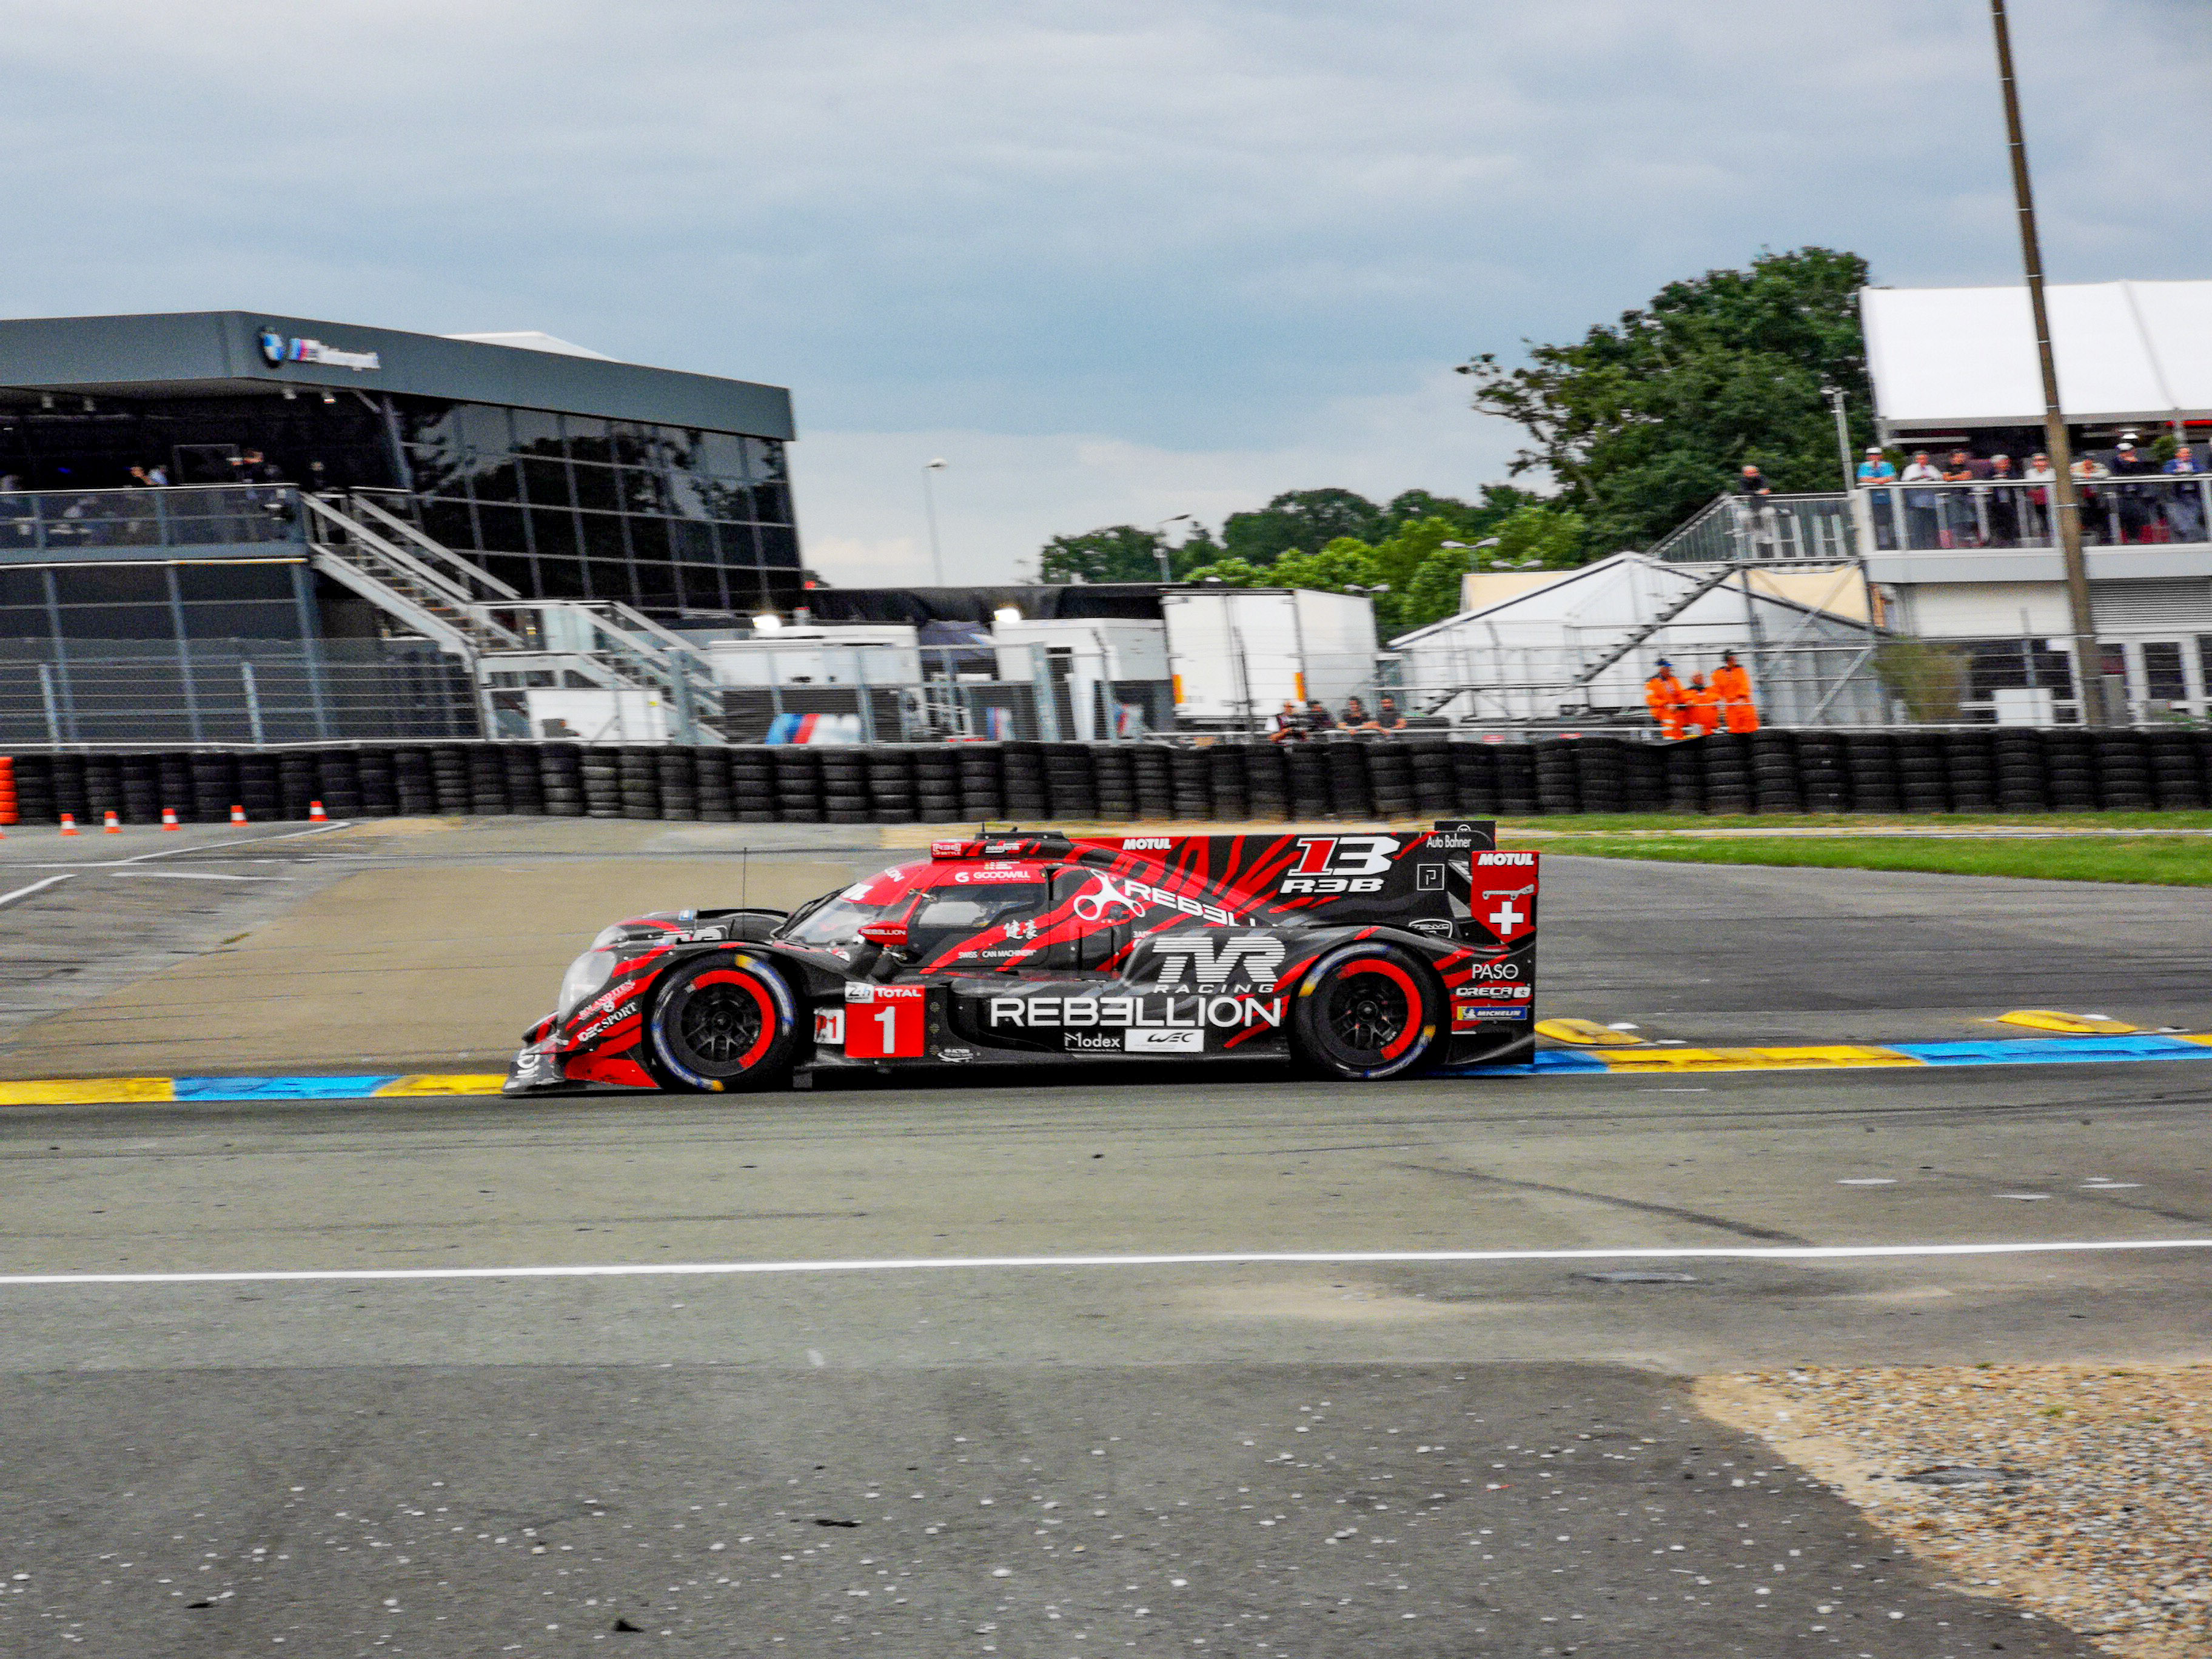 Huawei\'s P20 Pro smartphone shoots Le Mans - Page 6 of 9 - Digital ...